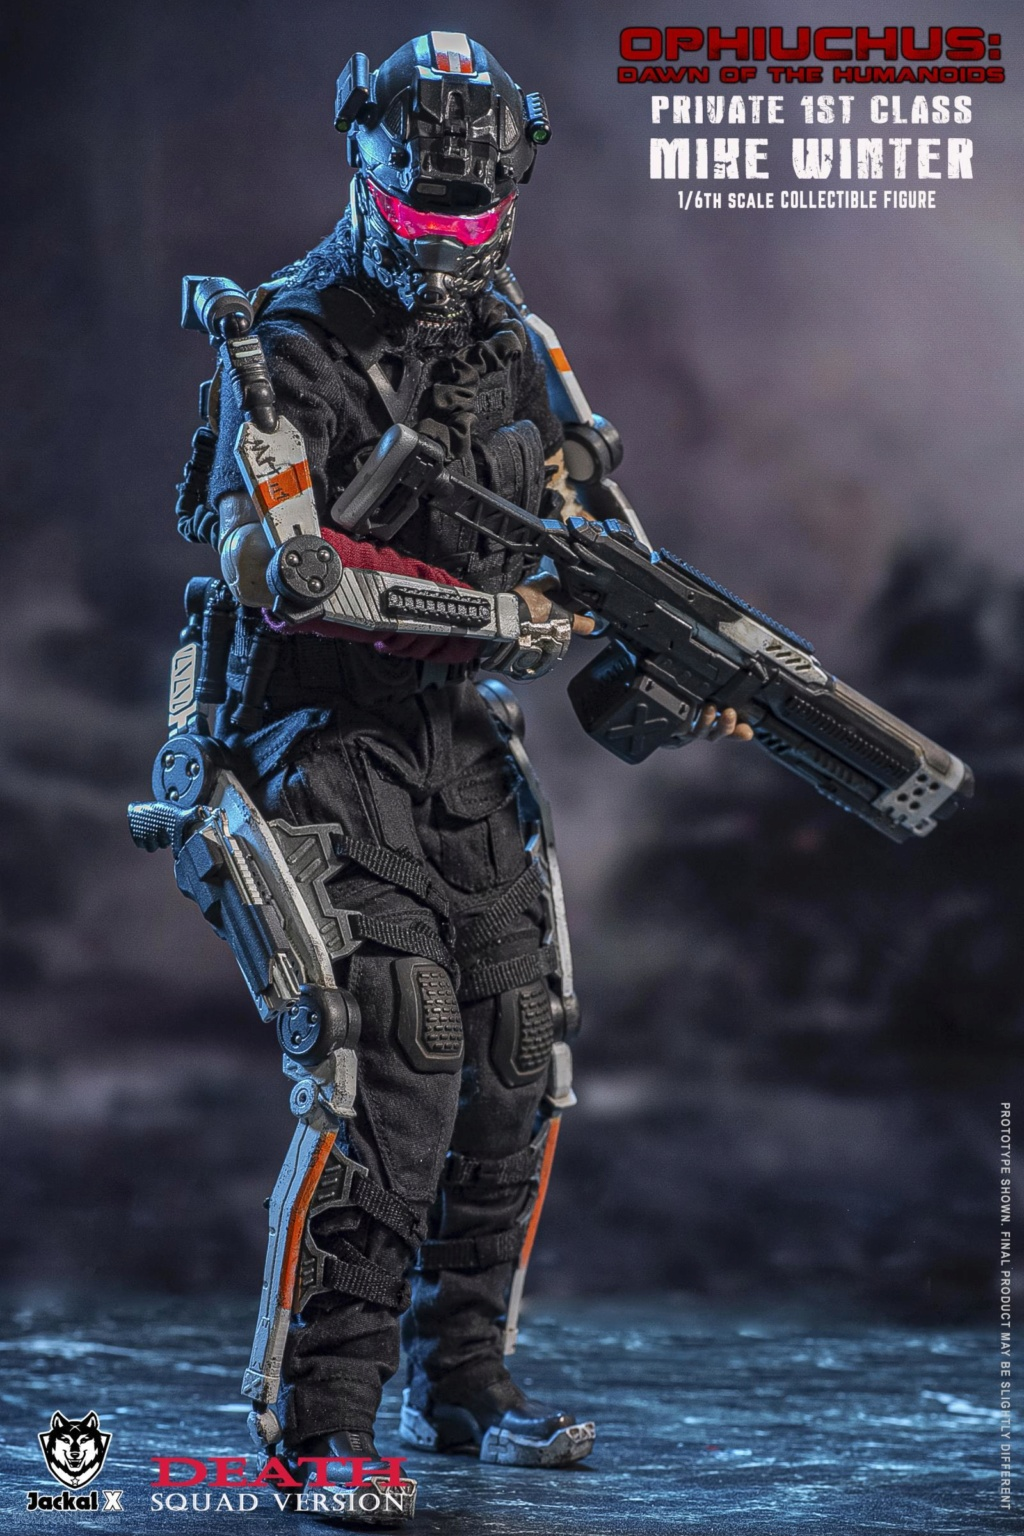 military - NEW PRODUCT: JackalX: 1/6 Ophiuchus: Dawn of Humanoid: Private 1st Class Mike Winter Collectible Figure (2 Versions) 43202035